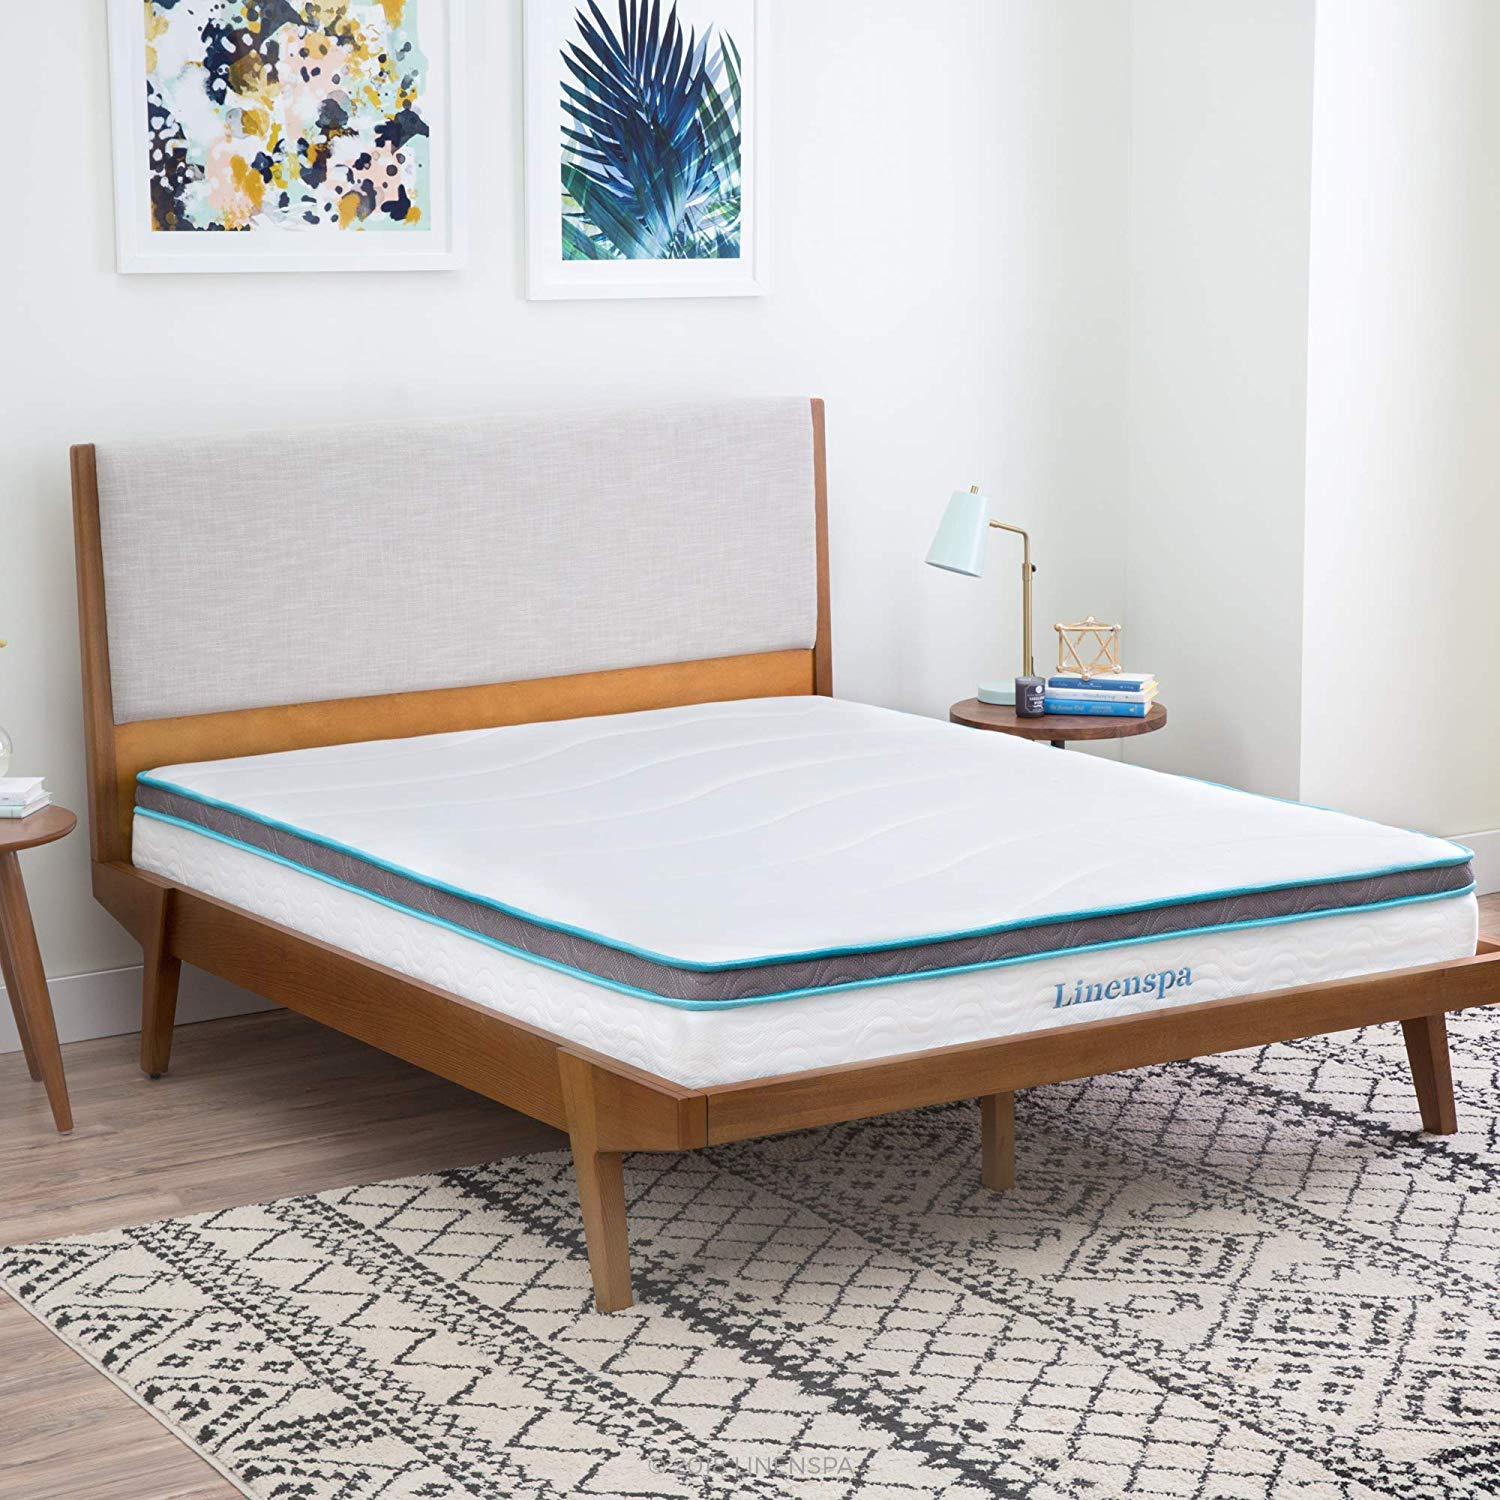 LINENSPA Best Mattress Under $500 Review by www.snoremagazine.com